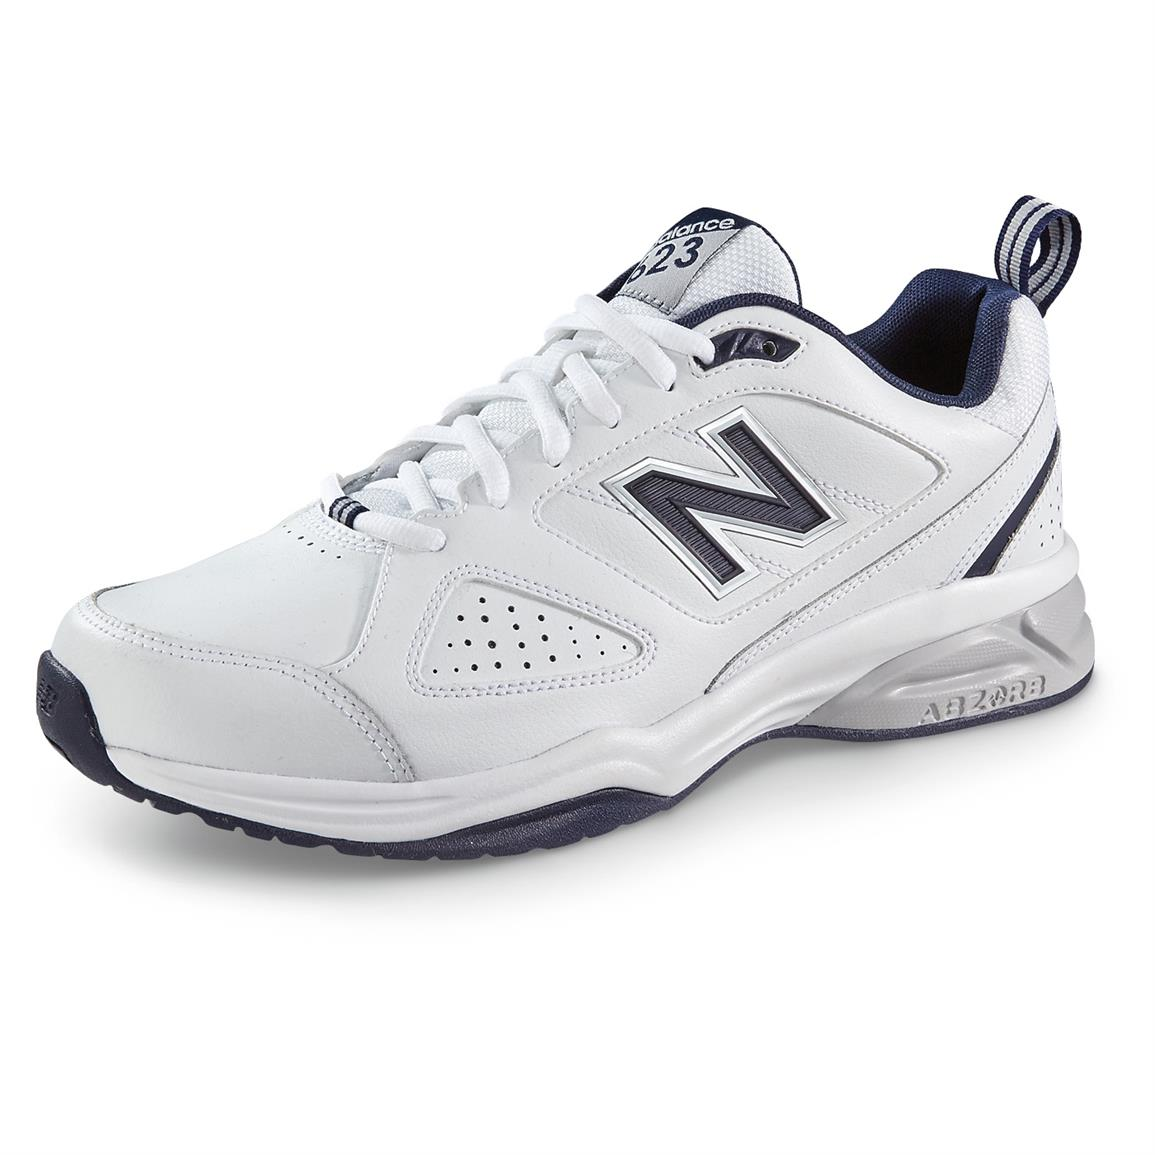 New Balance Men¿s 623 v3 Cross Trainers, White / Navy